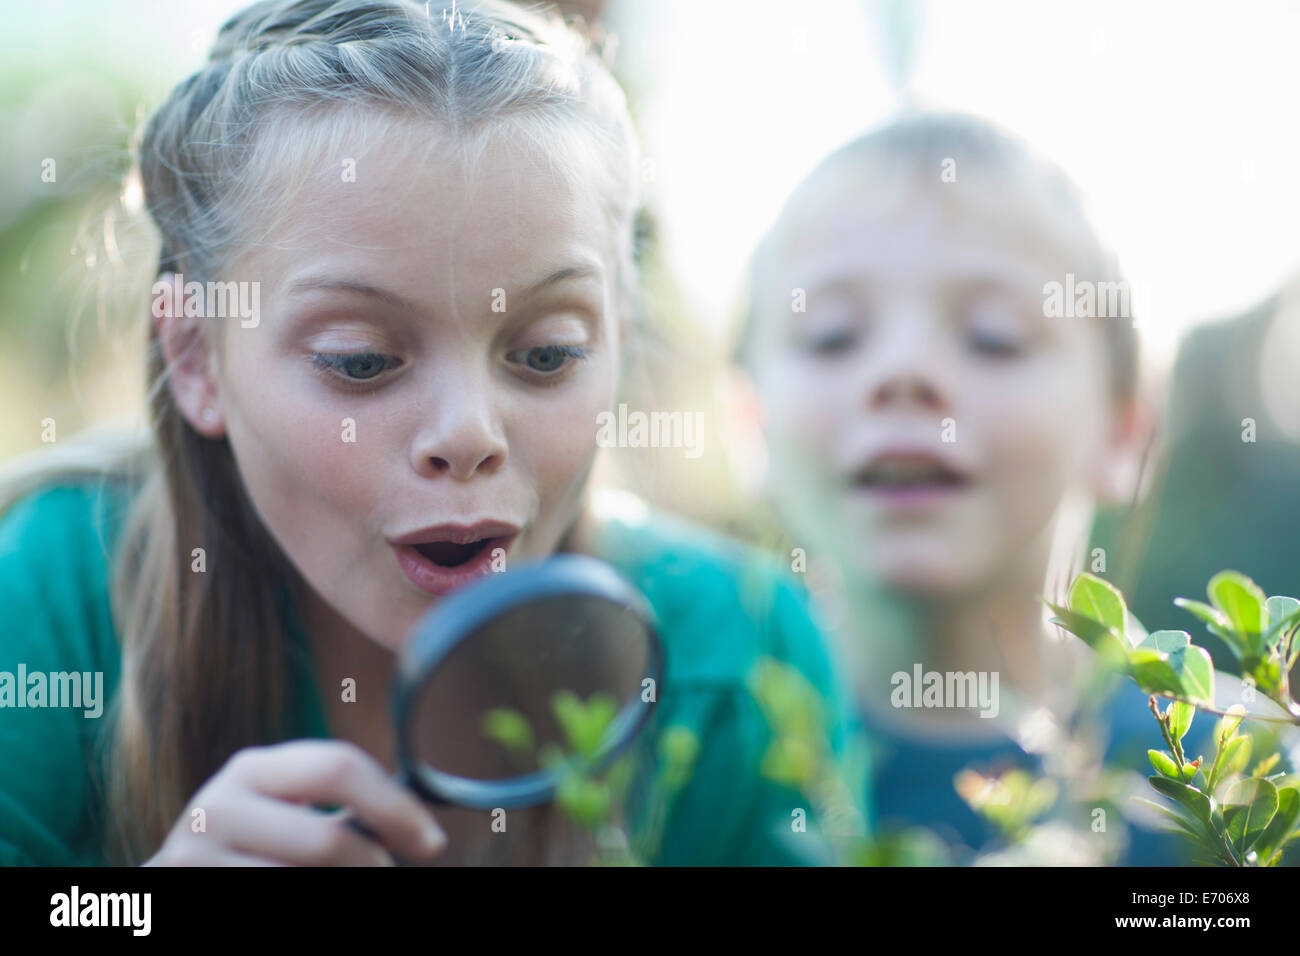 Brother and sister looking at plants with magnifying glass in garden - Stock Image